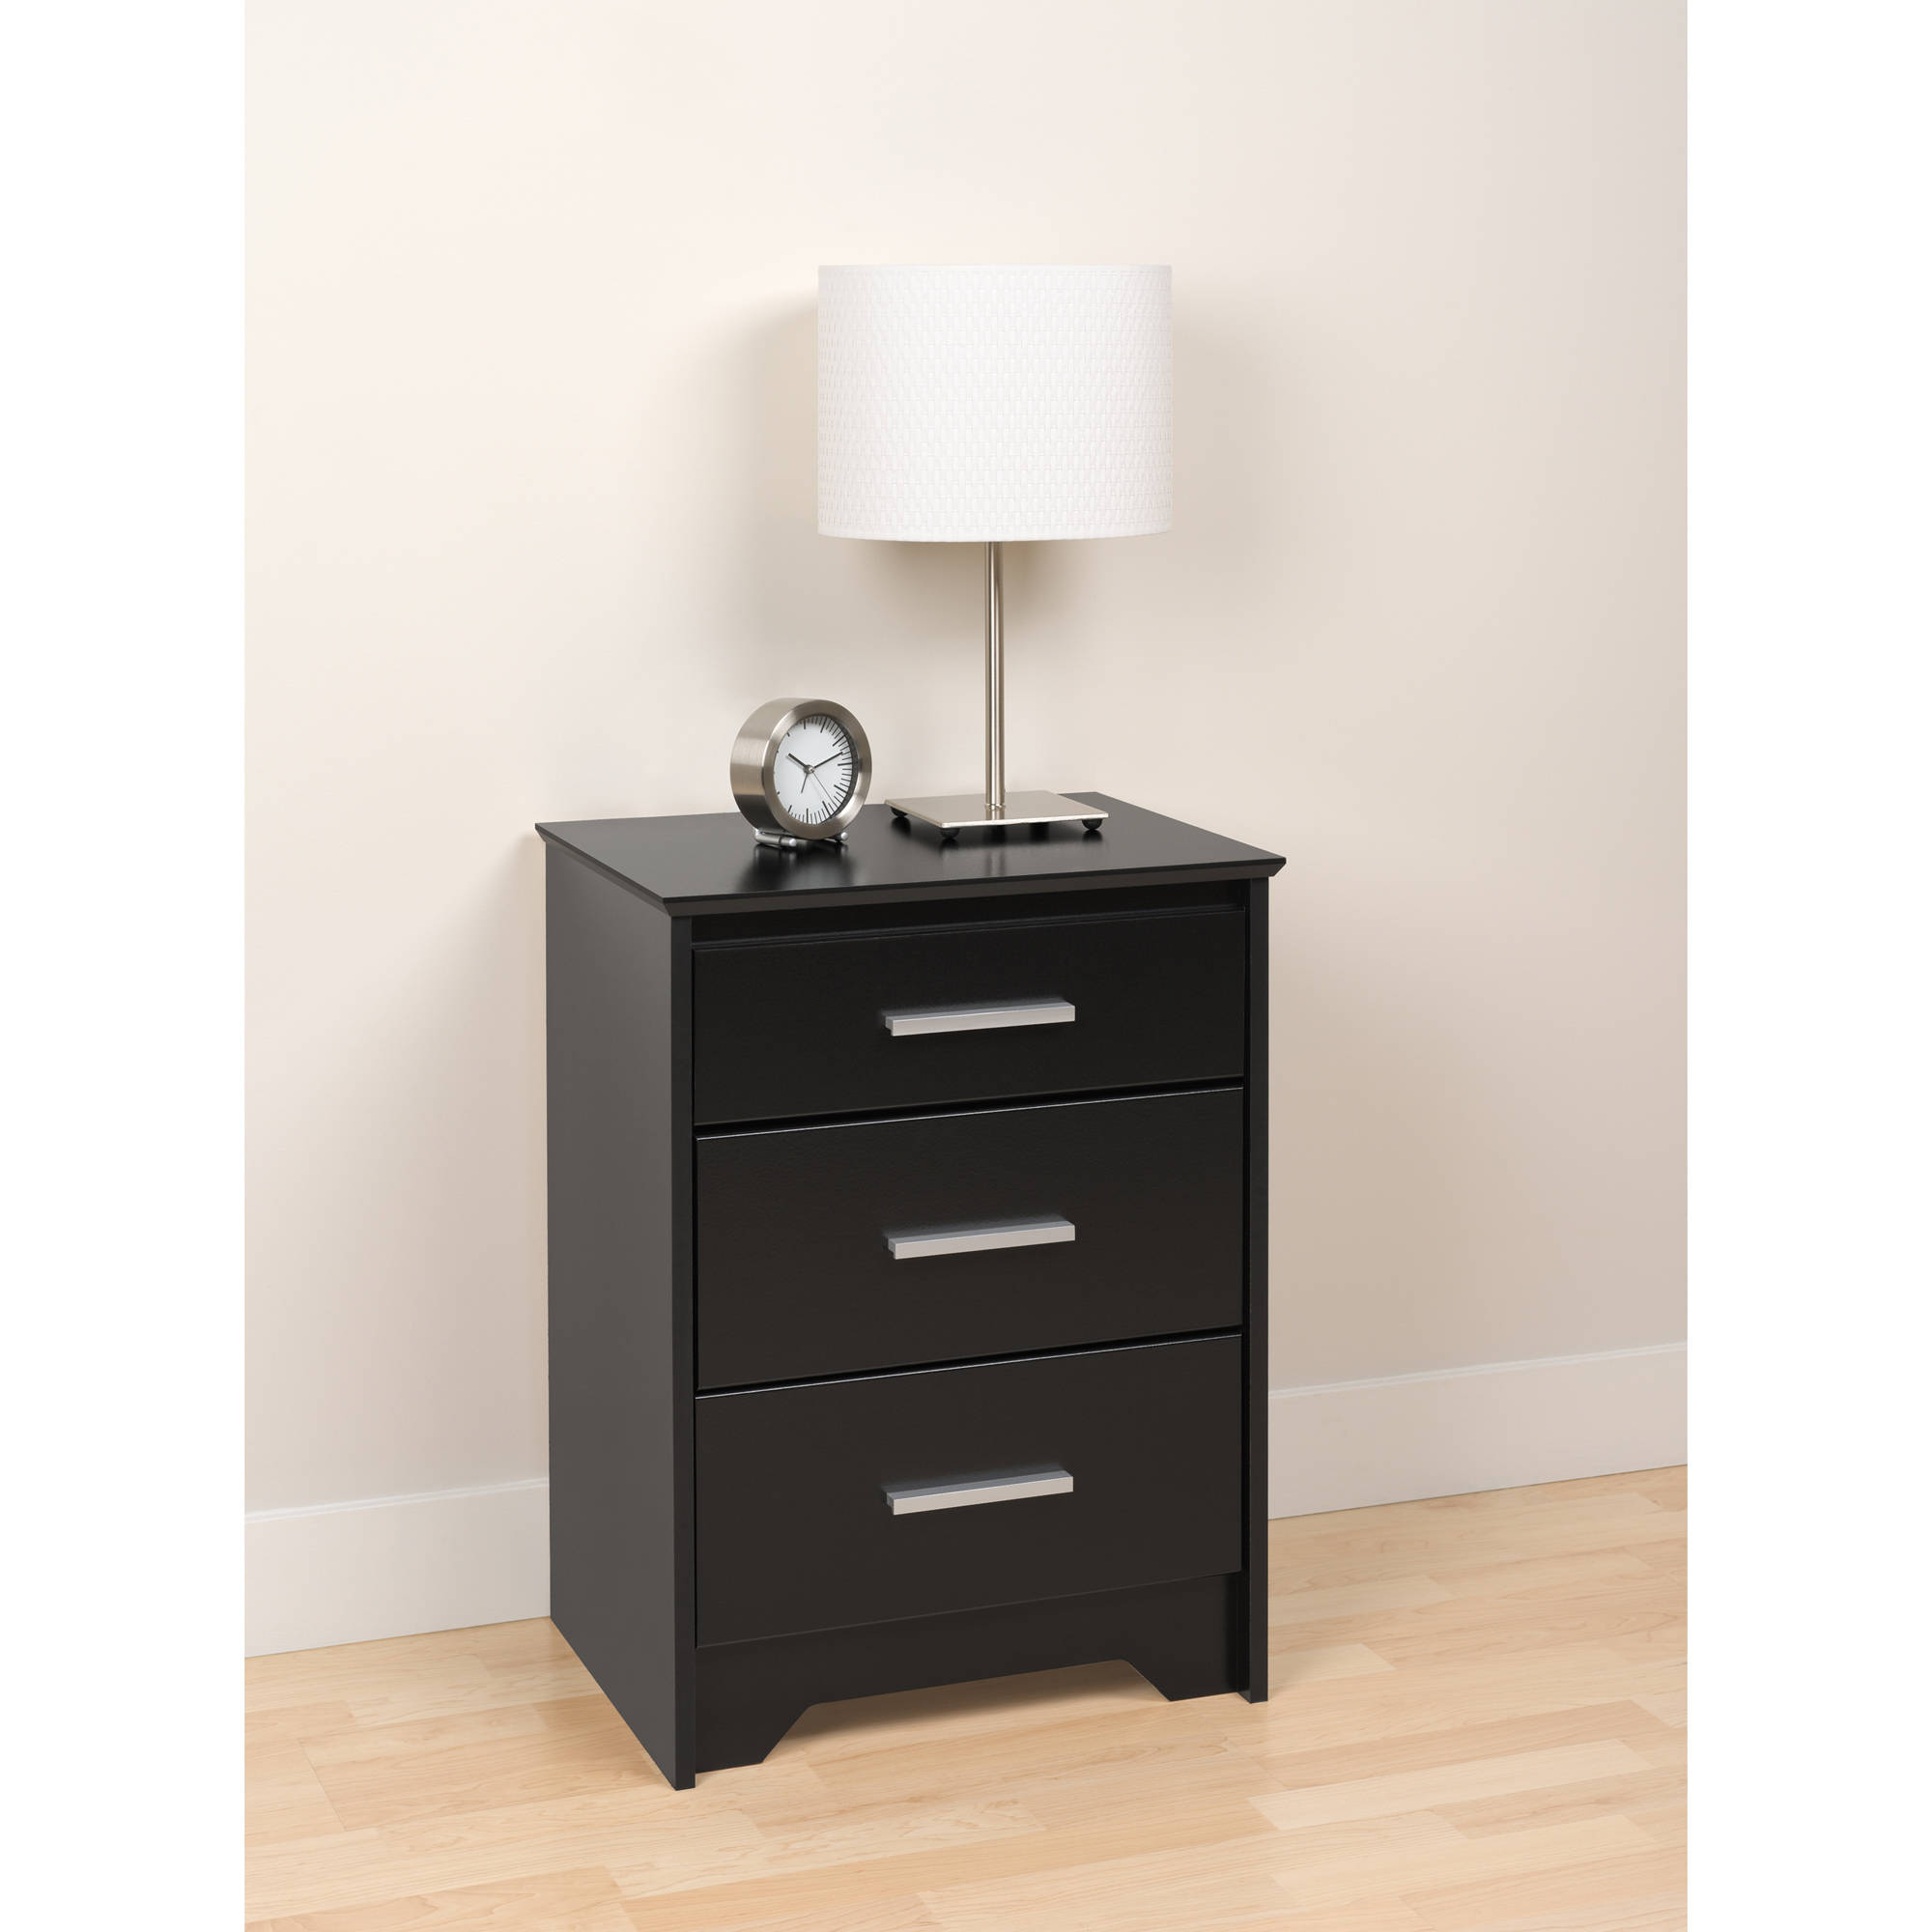 wide drawer white scandinavian a nightstand chest products retro furniture bb store